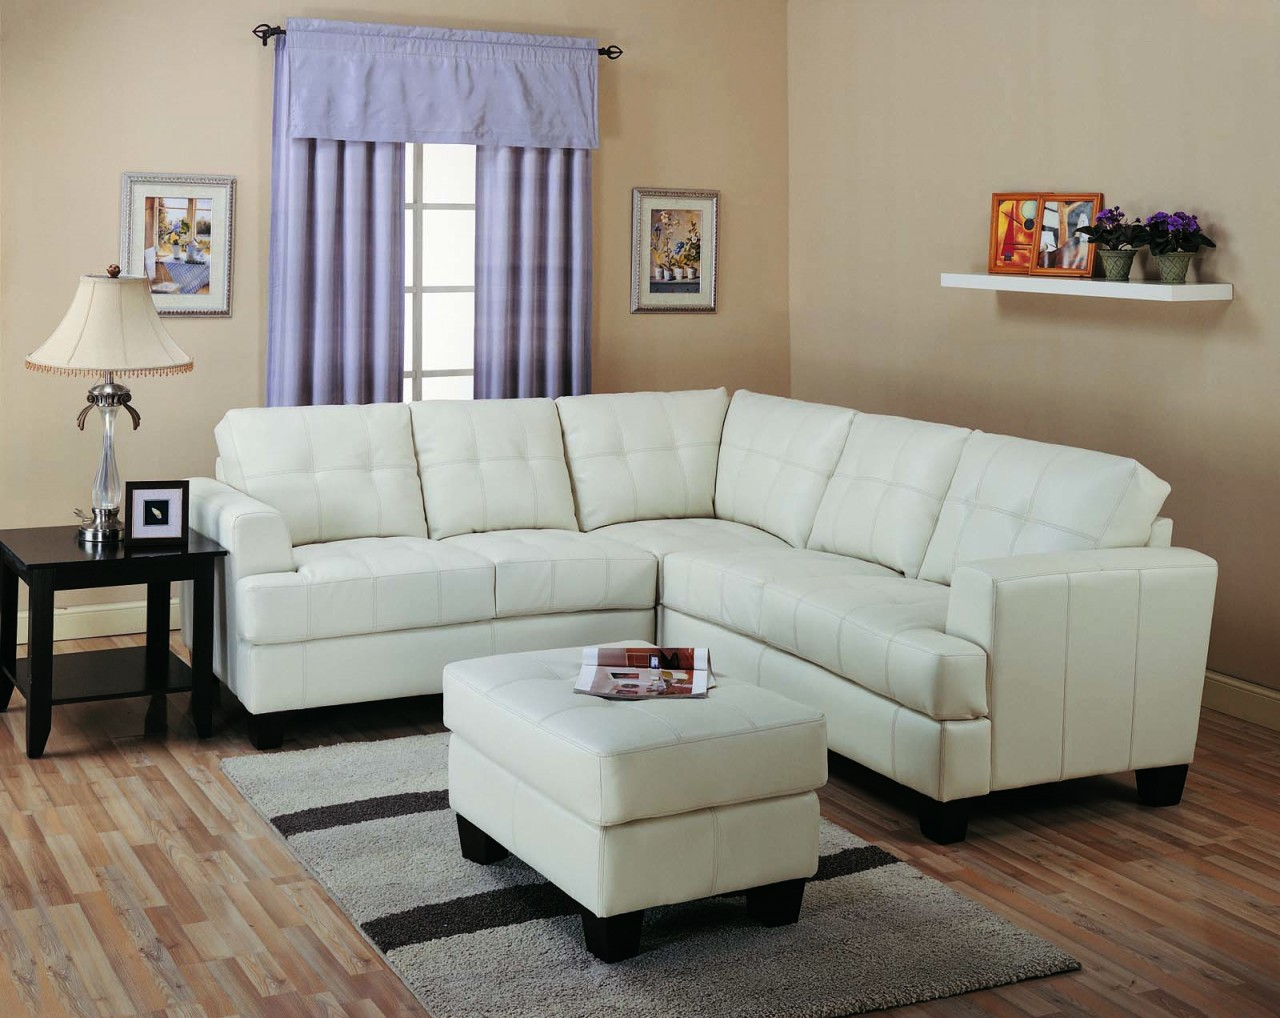 types of best small sectional couches for small living rooms